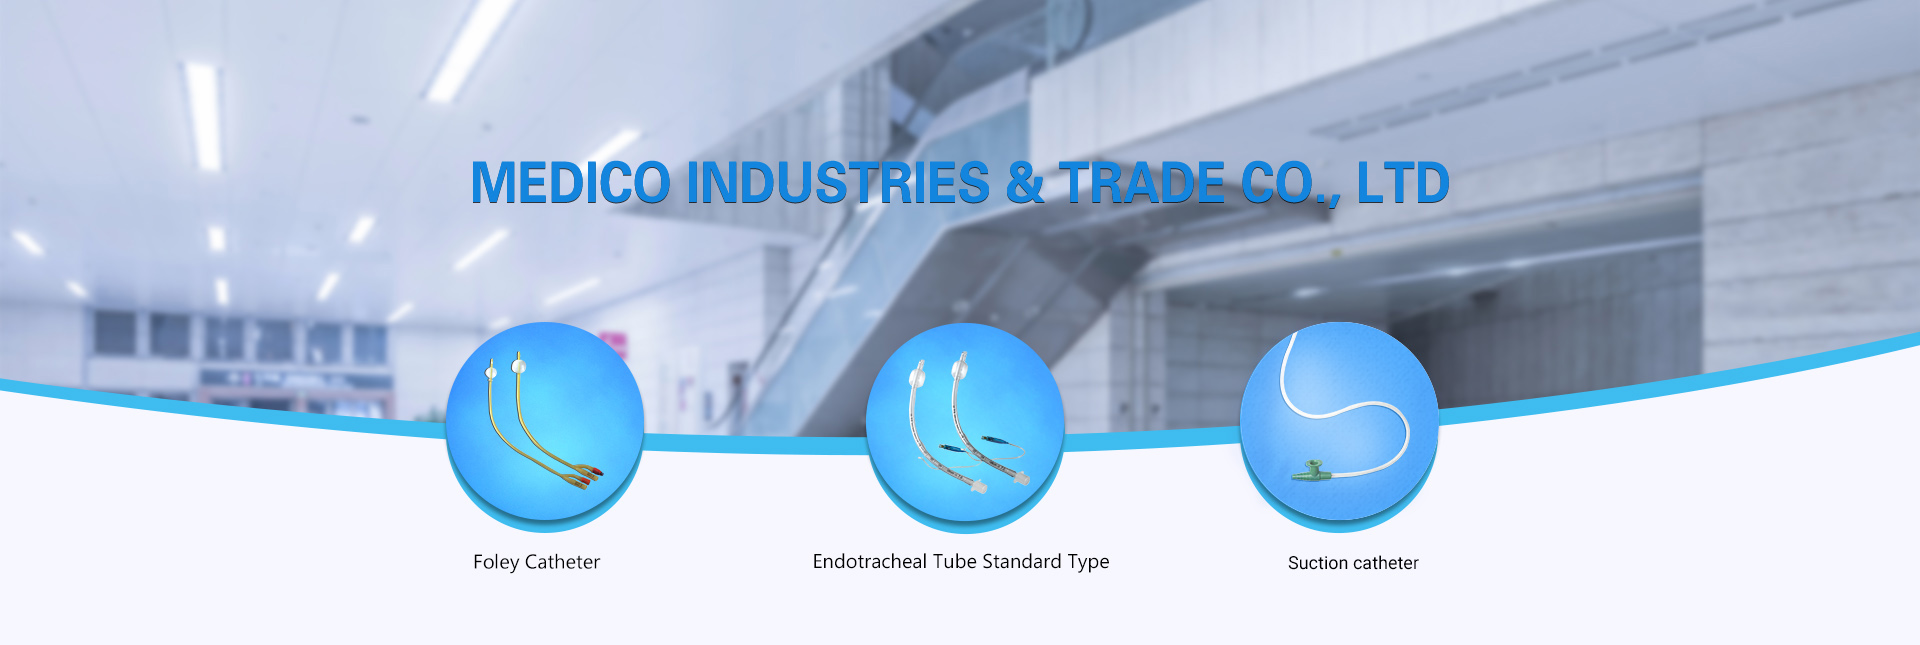 MEDICO INDUSTRIES & TRADE CO., LTD